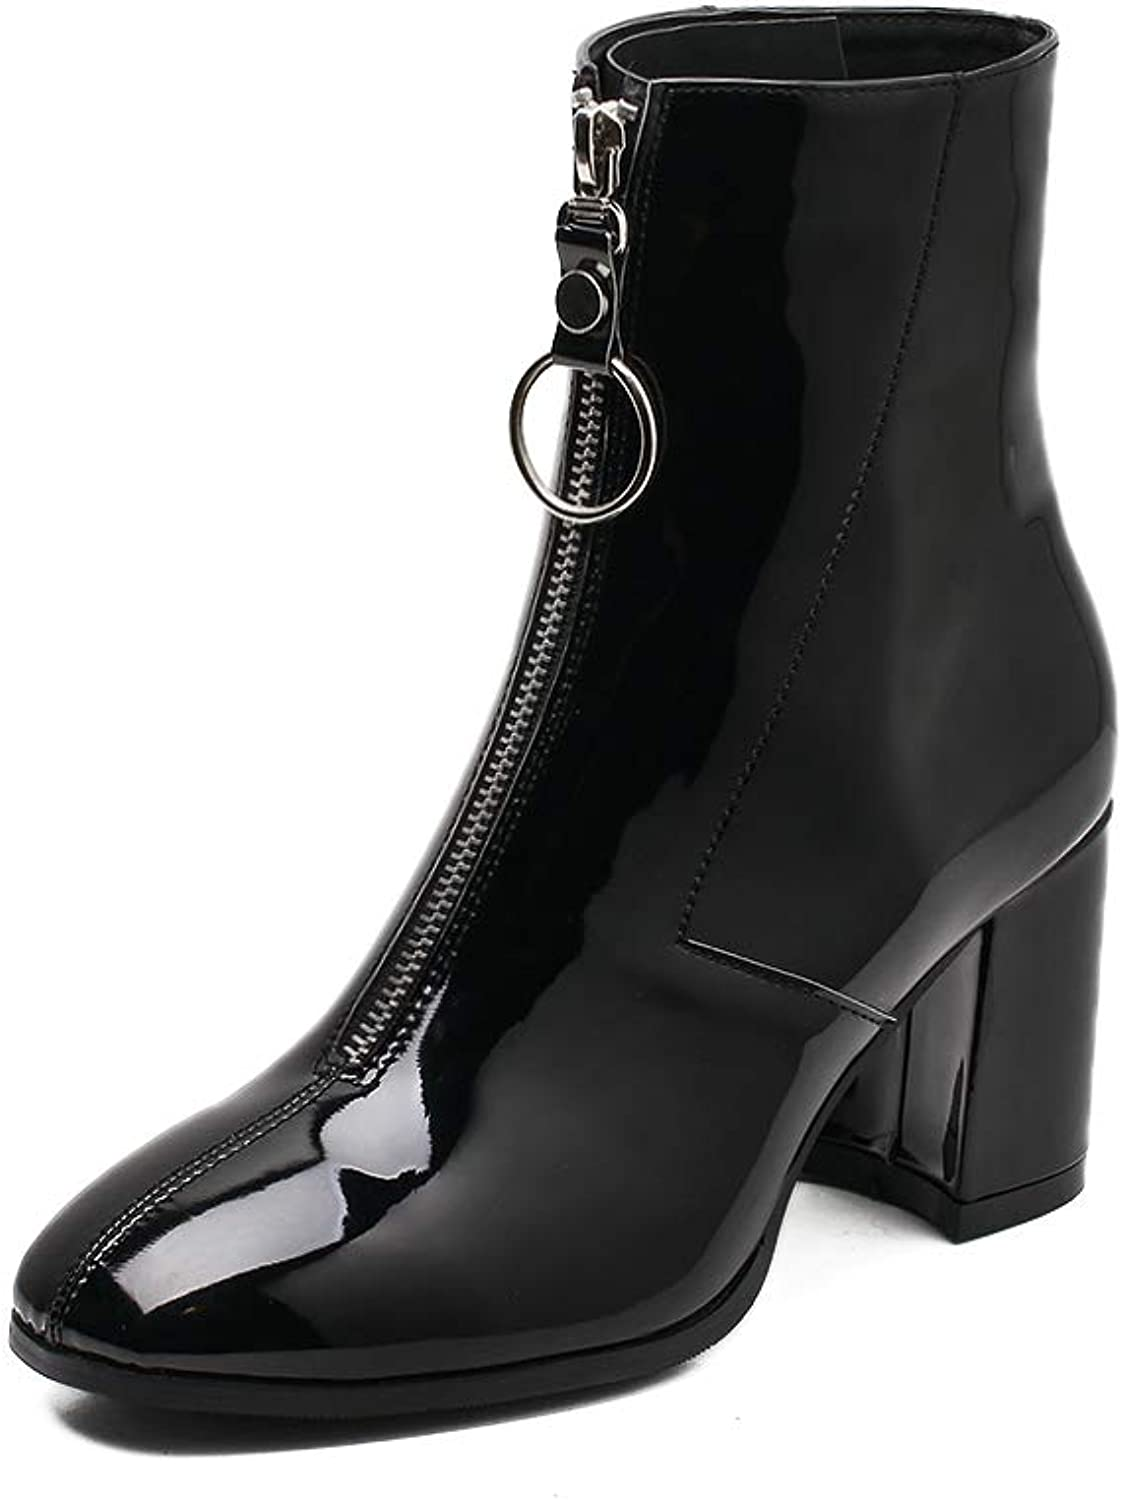 Women's Boots, Square Head shoes, Thick high Heel Boots, Spring and Winter New, Front Zipper Versatile shoes, Martin Boots